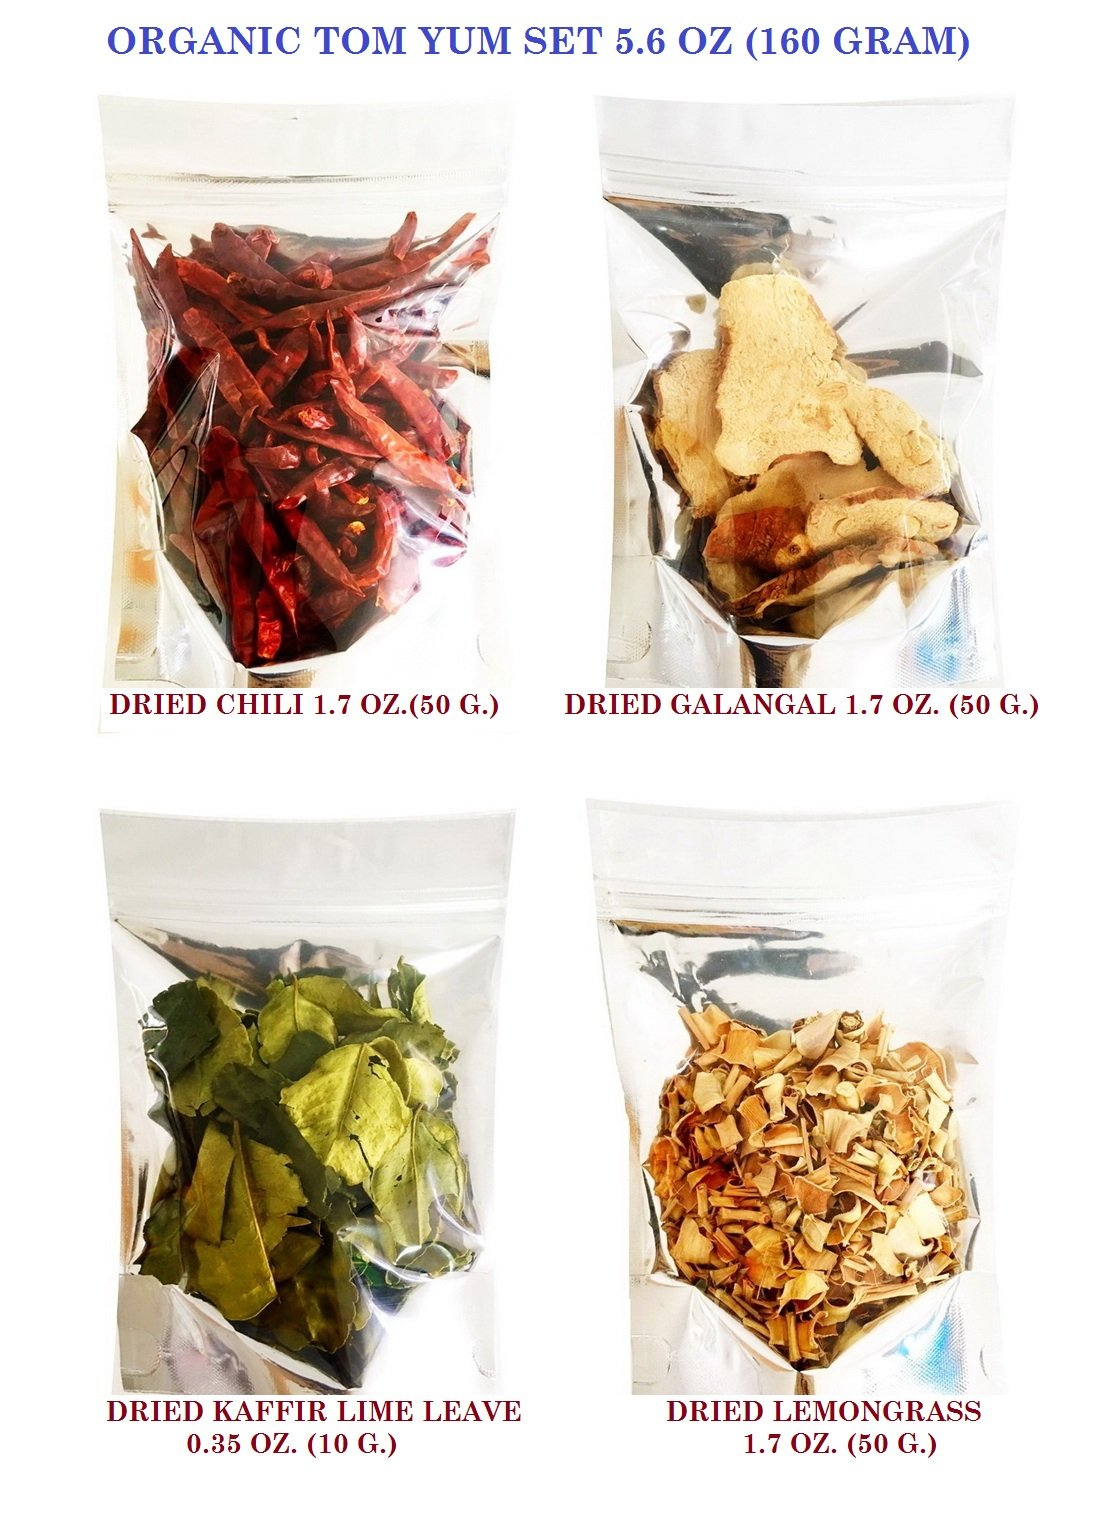 SPICY SERVED Organic Tom Yum Set Thai Food Hot & Spicy Soup 160 g. for Dried Chilli 50 g./Dried Galangal 50 g./Dried Lemongrass 50 g.and Dried Kaaffir Lime Leave 10 g.